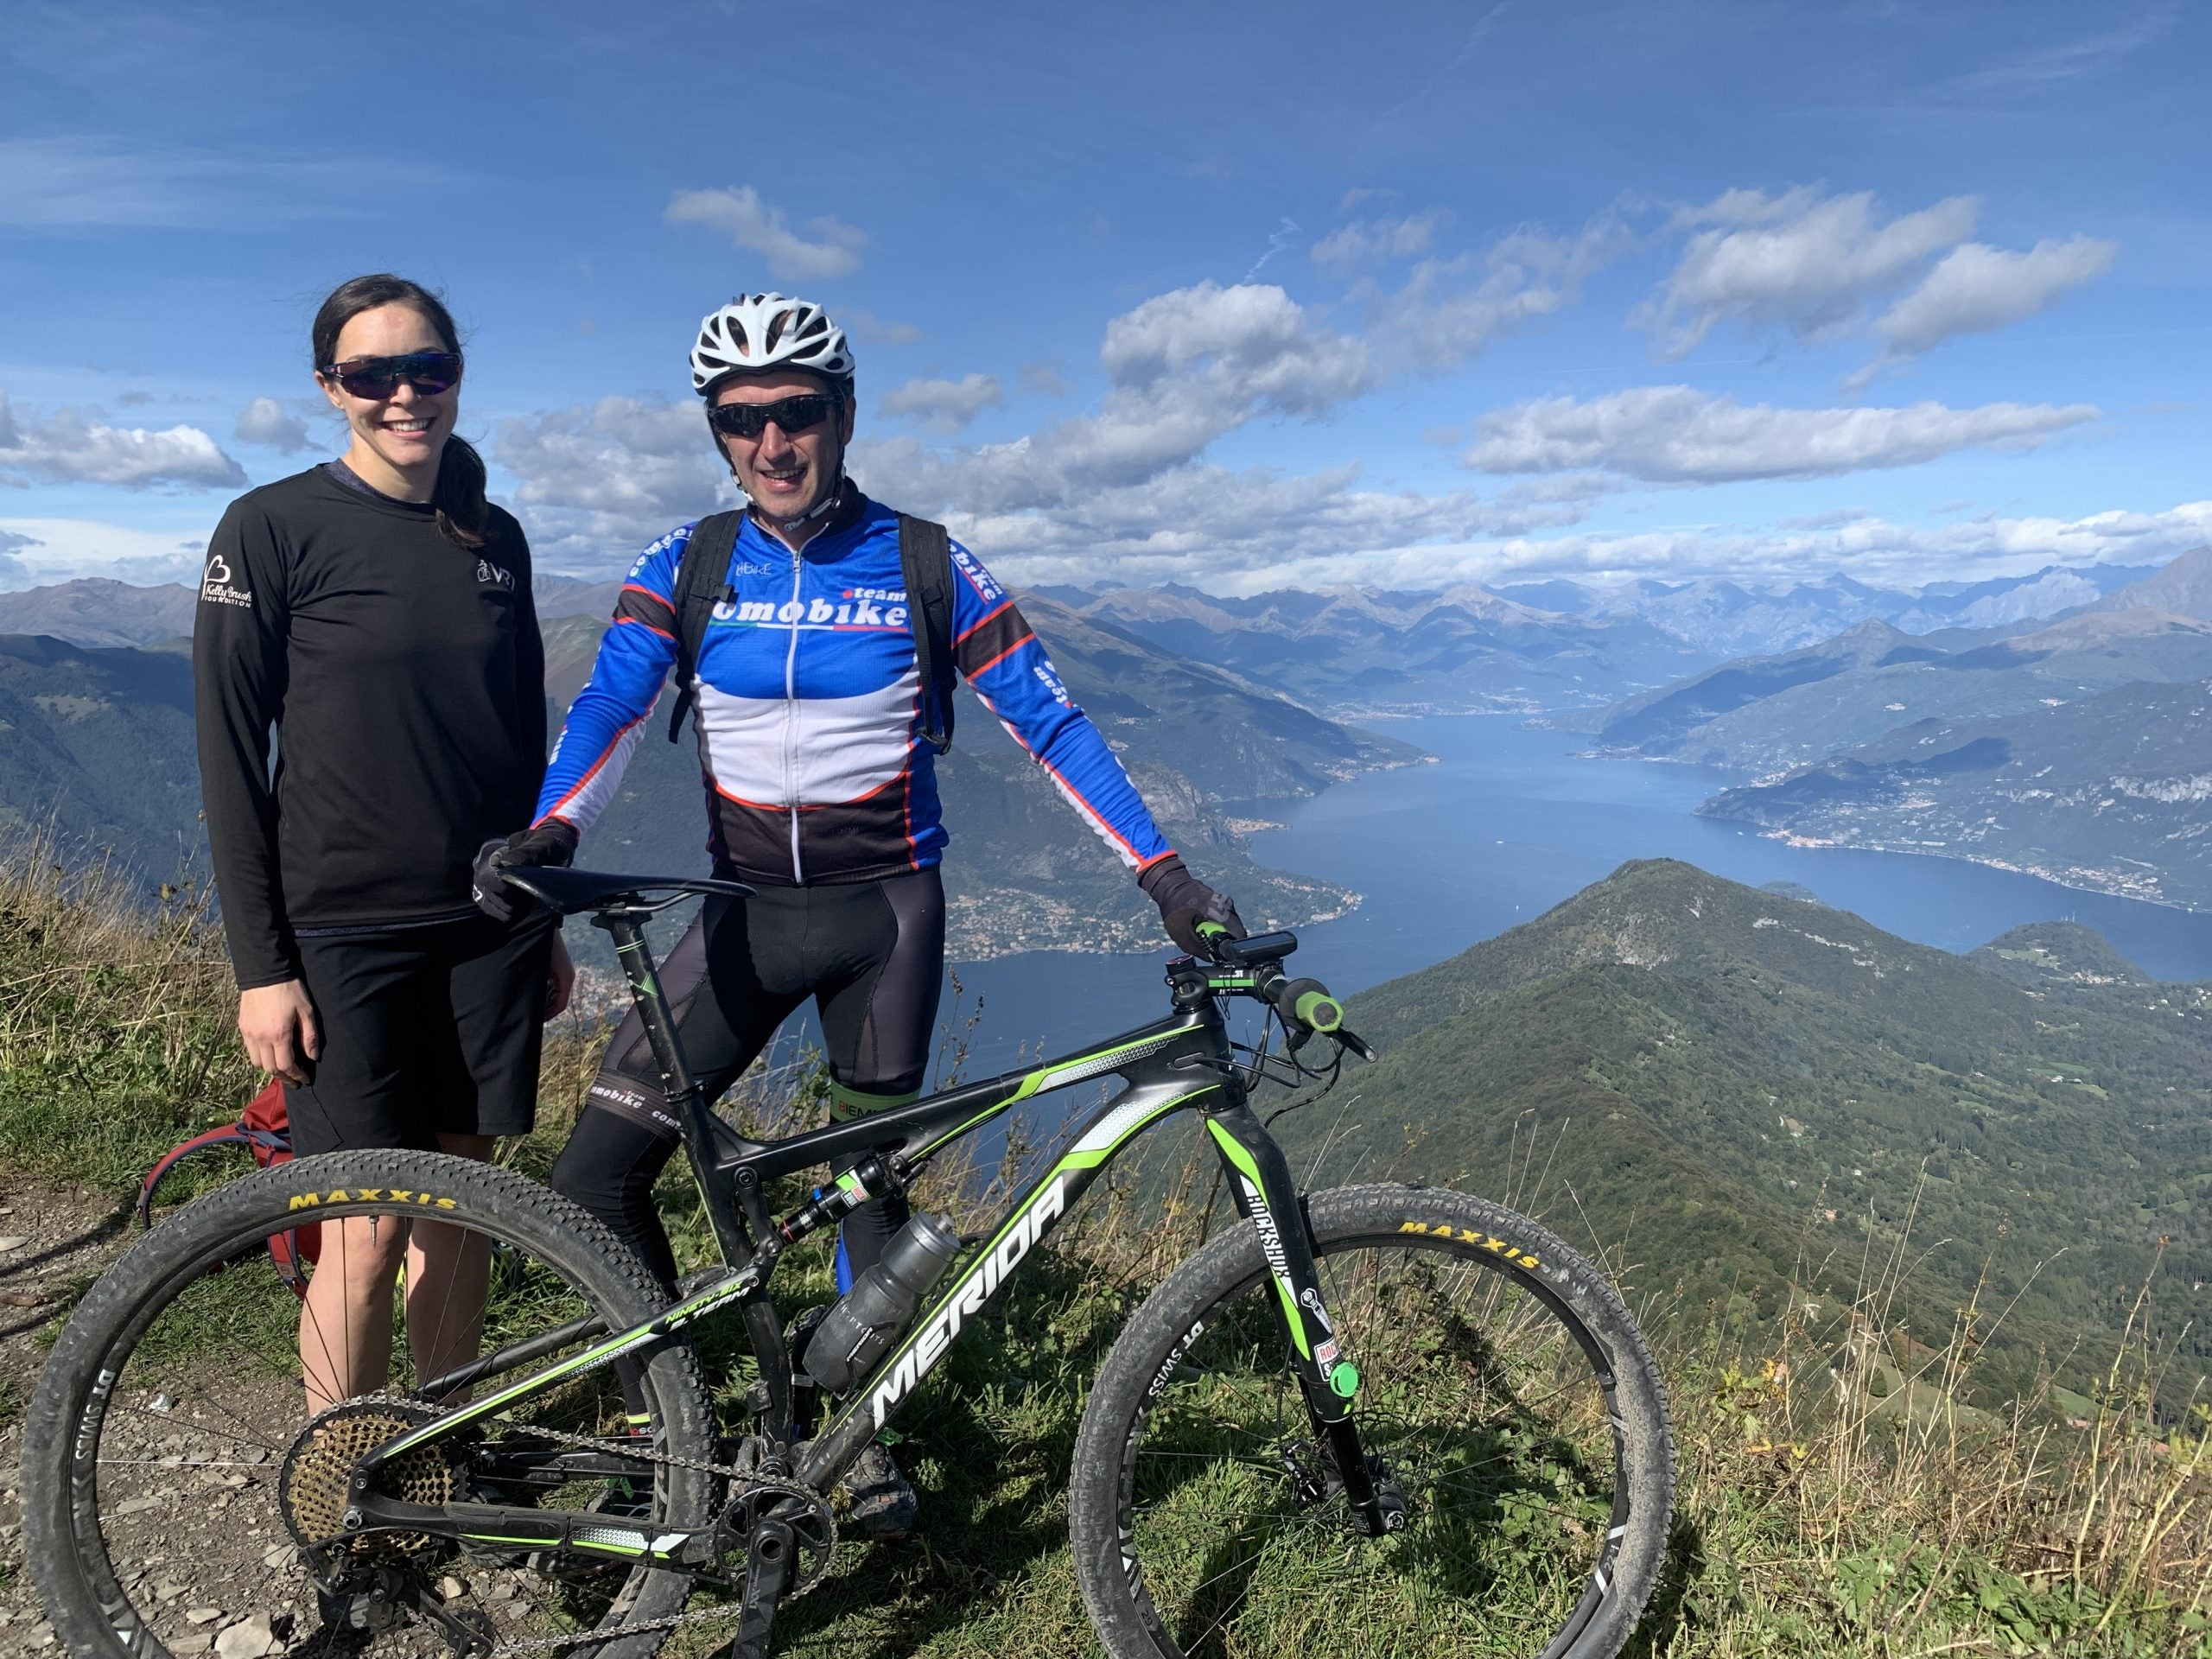 Ride Review: Biking Italy's Lake Como By E-Mountain Bike - Made it to the Top 2